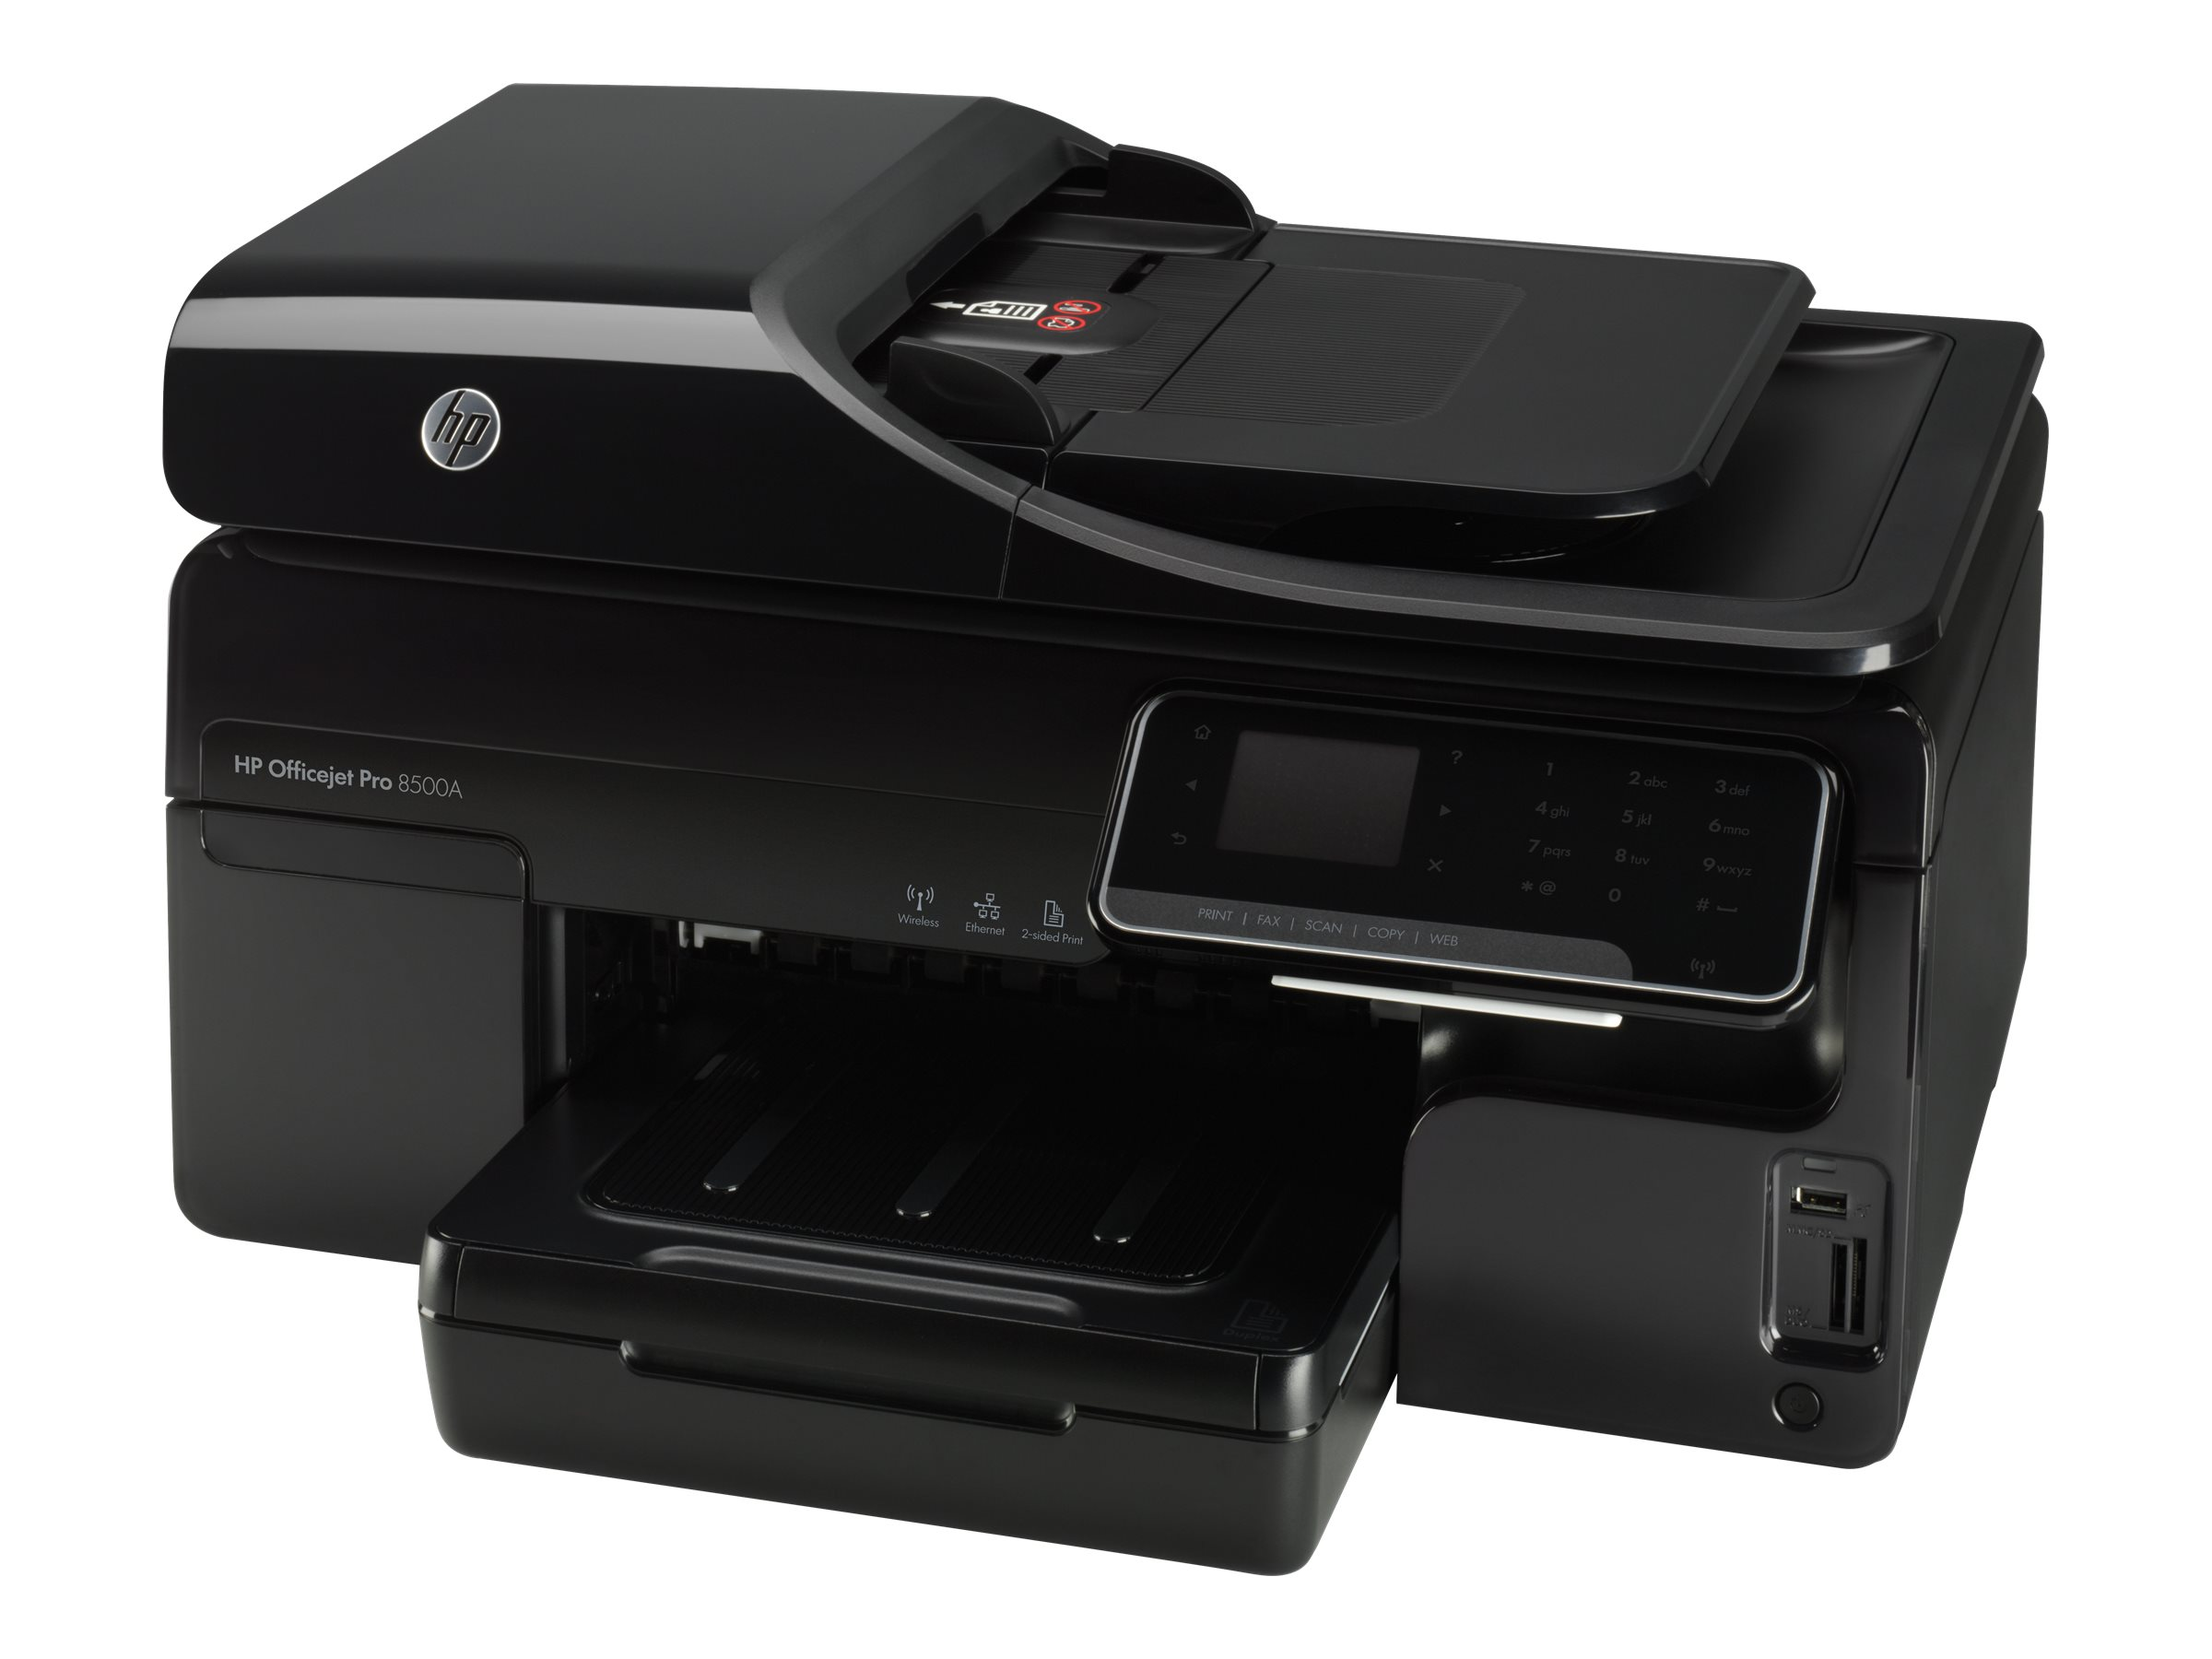 OFFICEJET PRO 8500A e-All-in-One